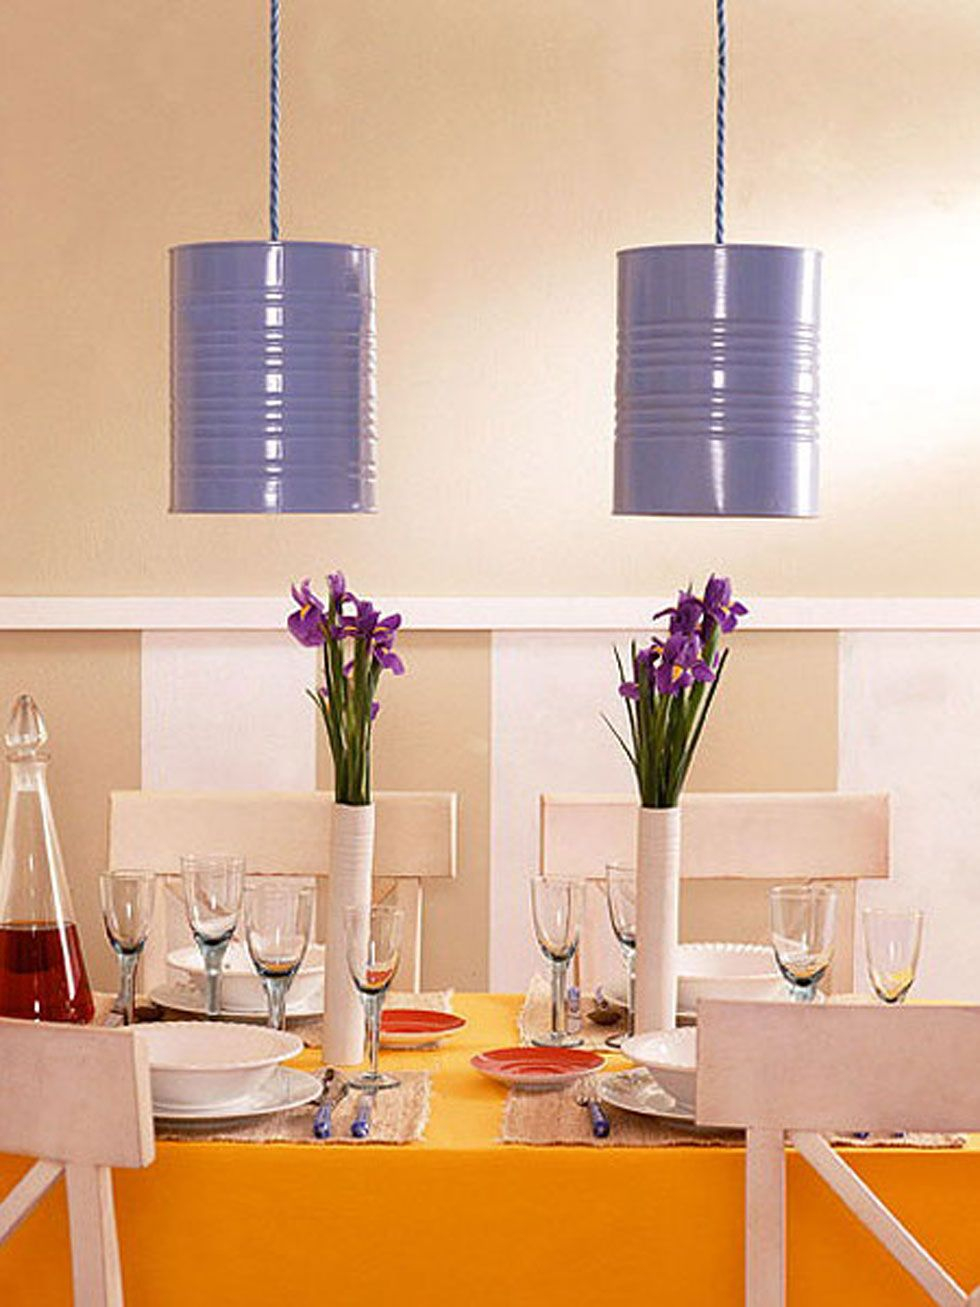 Tin can pendant light Undoubtedly Gorgeous DIY Pendant Light Fixtures From Upcycle Items